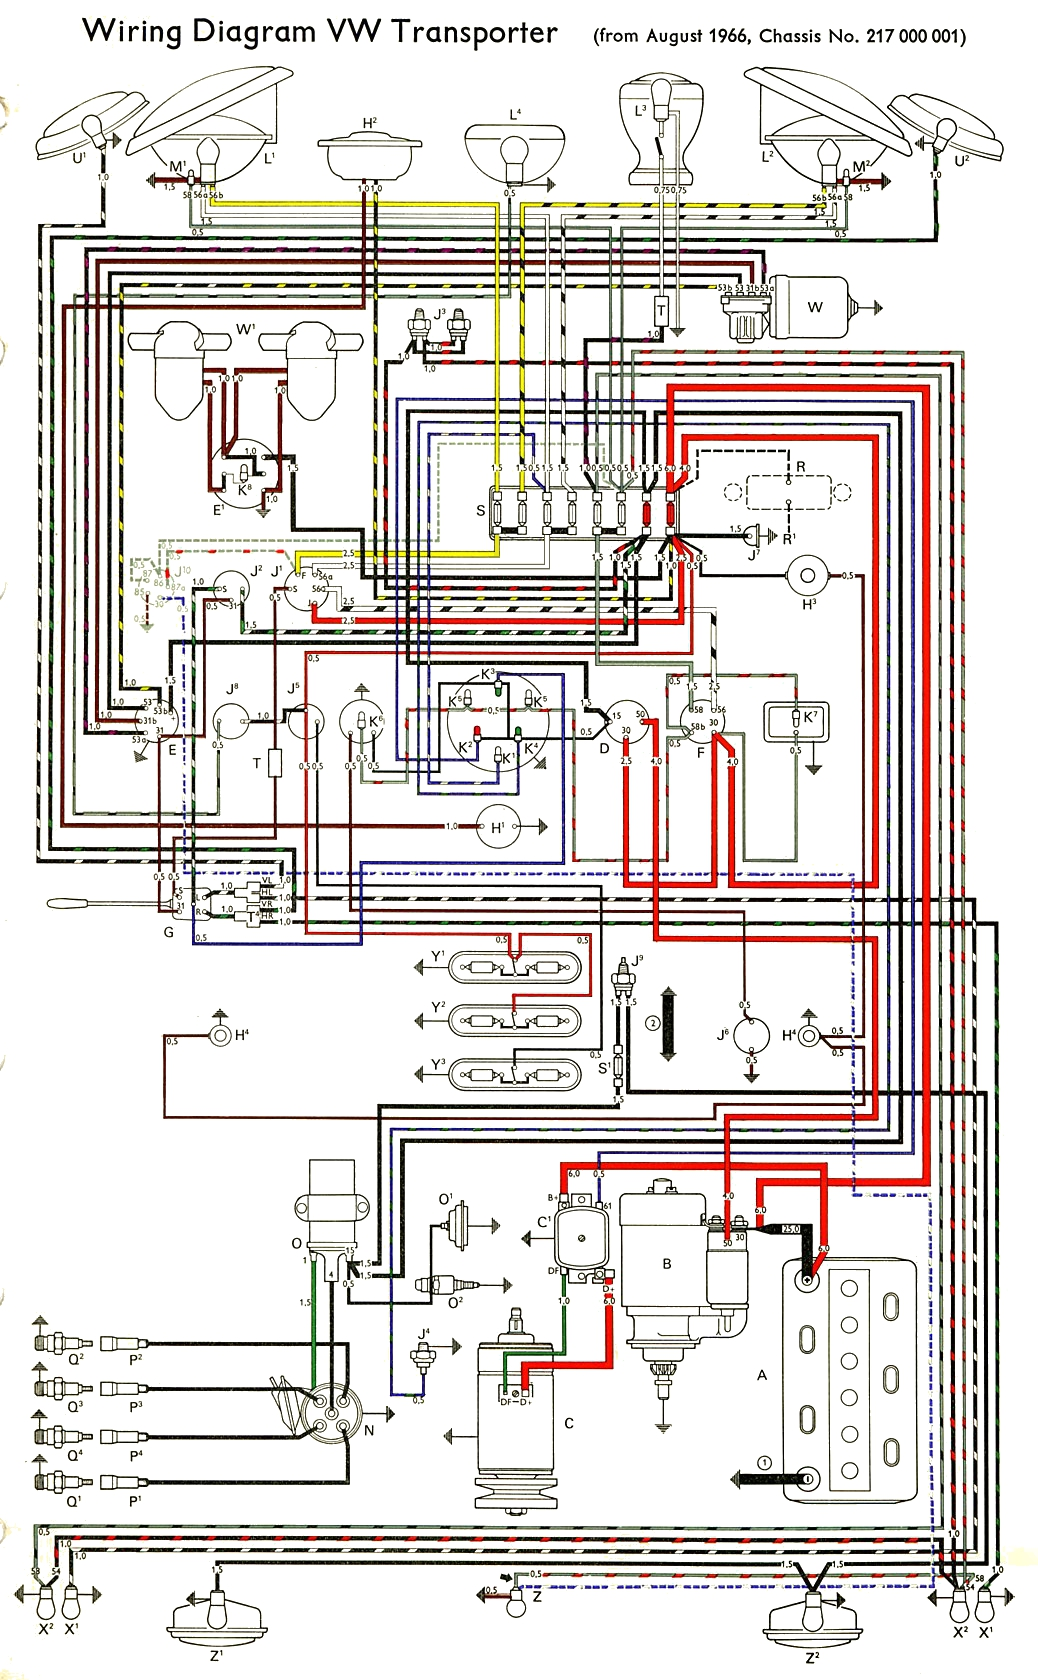 thesamba com type 2 wiring diagrams rh thesamba com 1970 Volkswagen Wiring Diagram 1972 Volkswagen Wiring Diagram